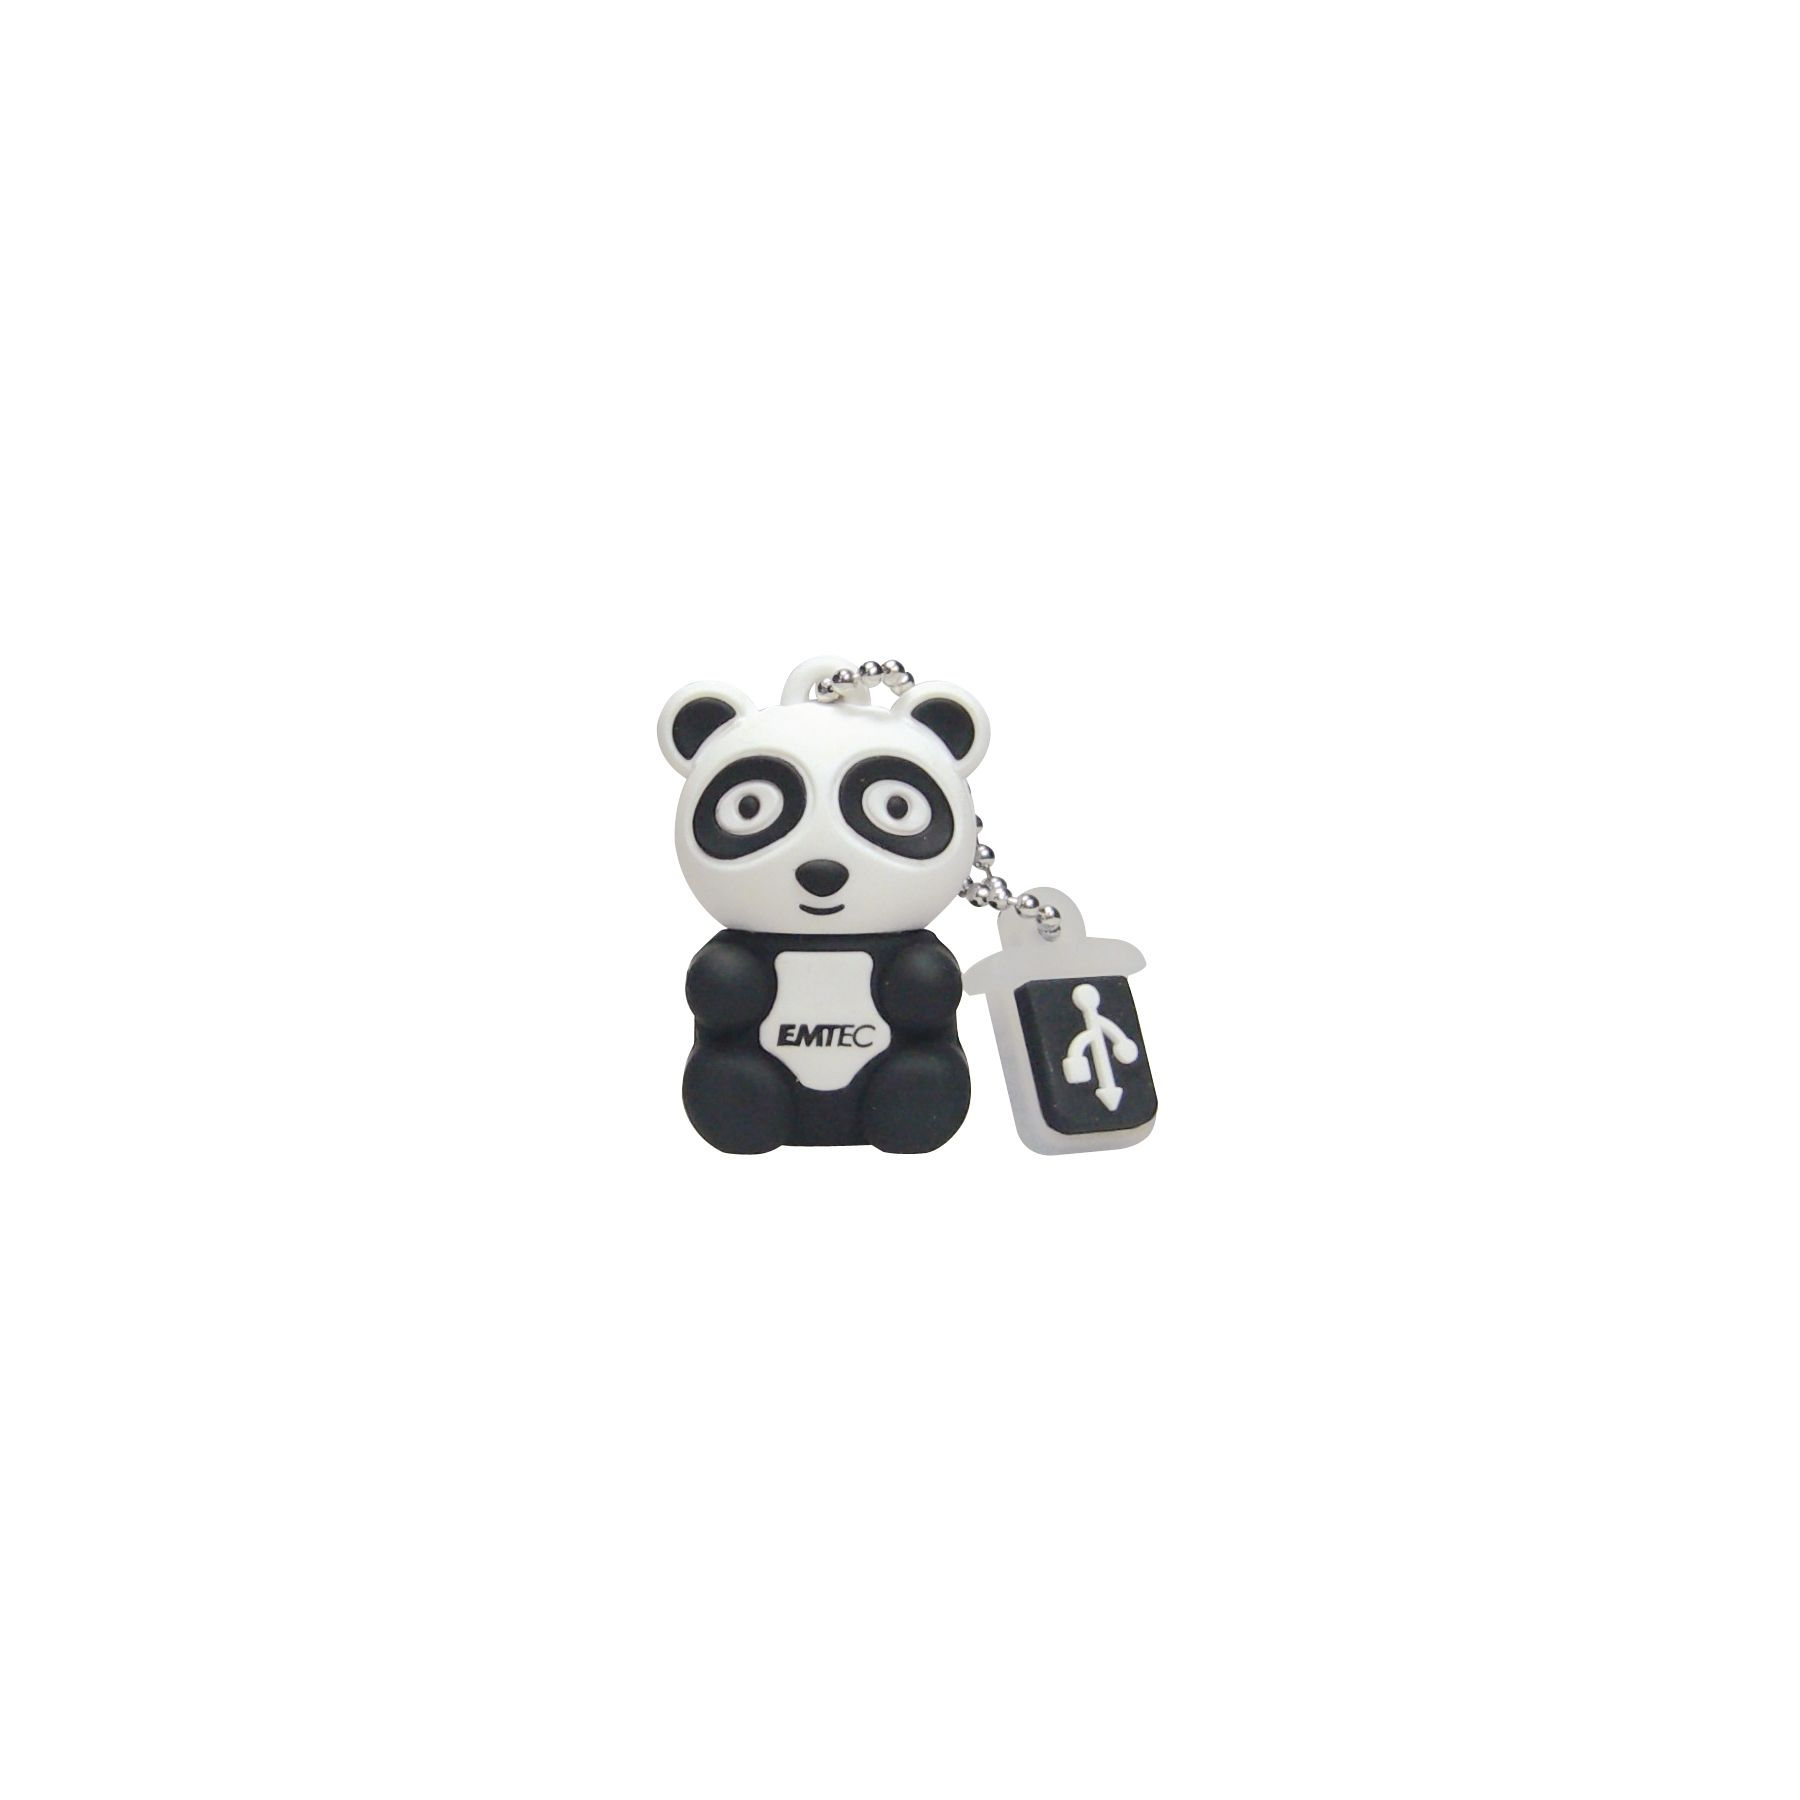 Emtec  M310 Animal USB Flash Drive 4GB